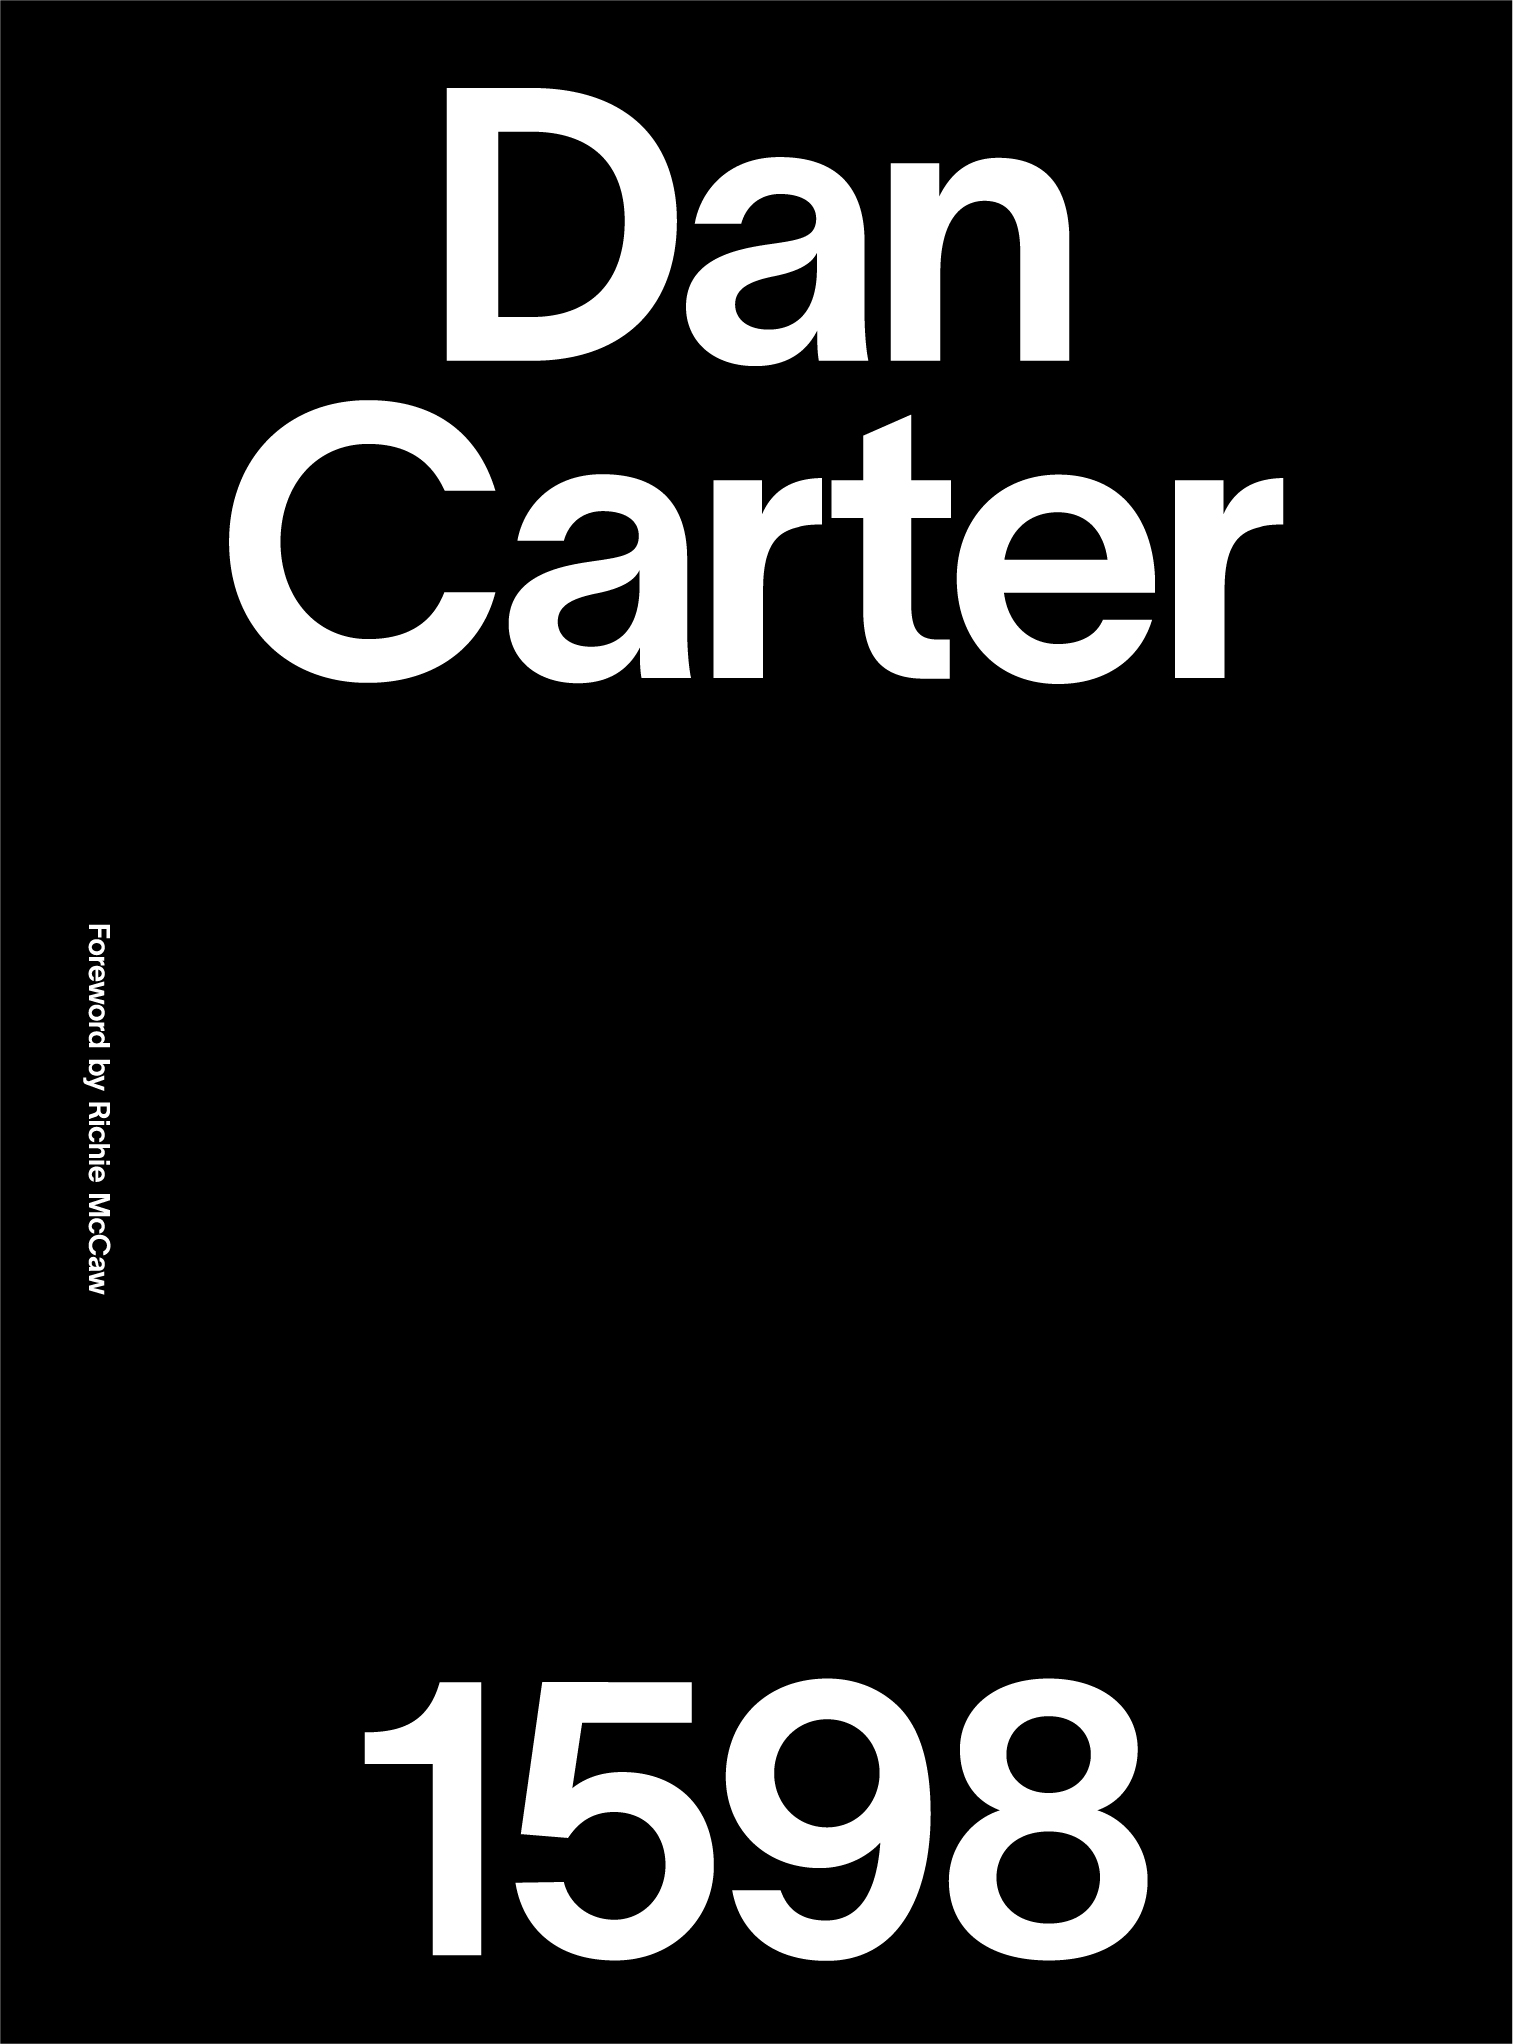 White text on a black background. The Text states simply Dan Carter 1598